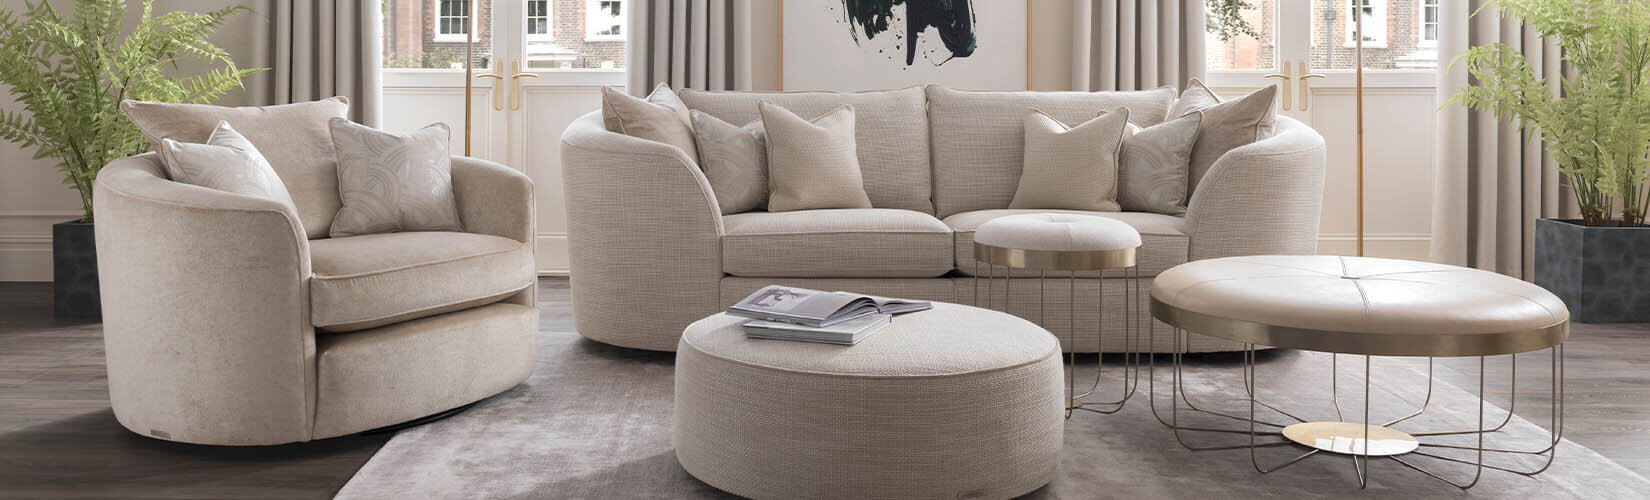 Made to Order Sofas: Supporting England with British Furniture Design